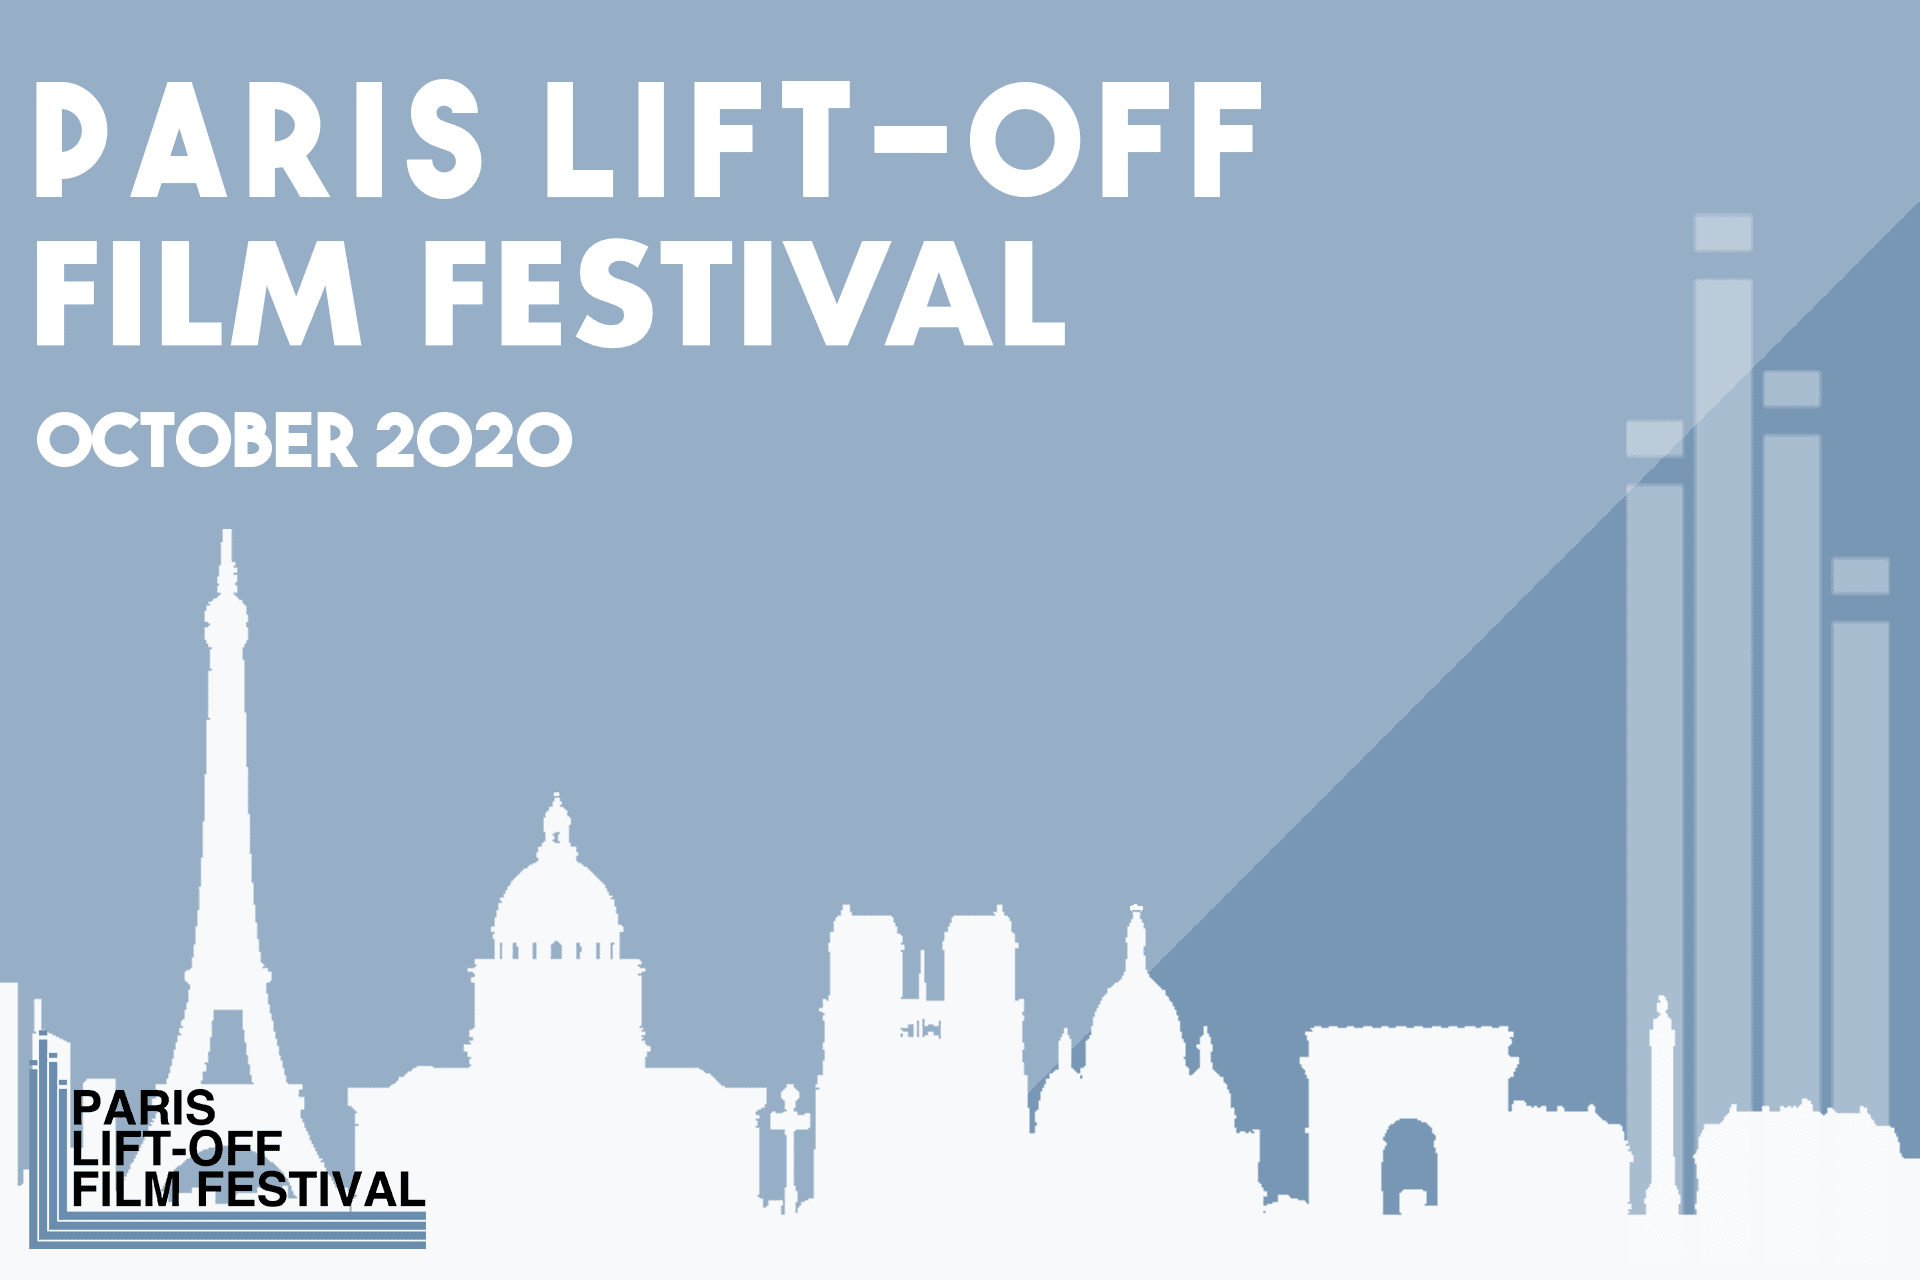 Paris Lift-Off Film Festival 2020 - Lift-Off Global Network